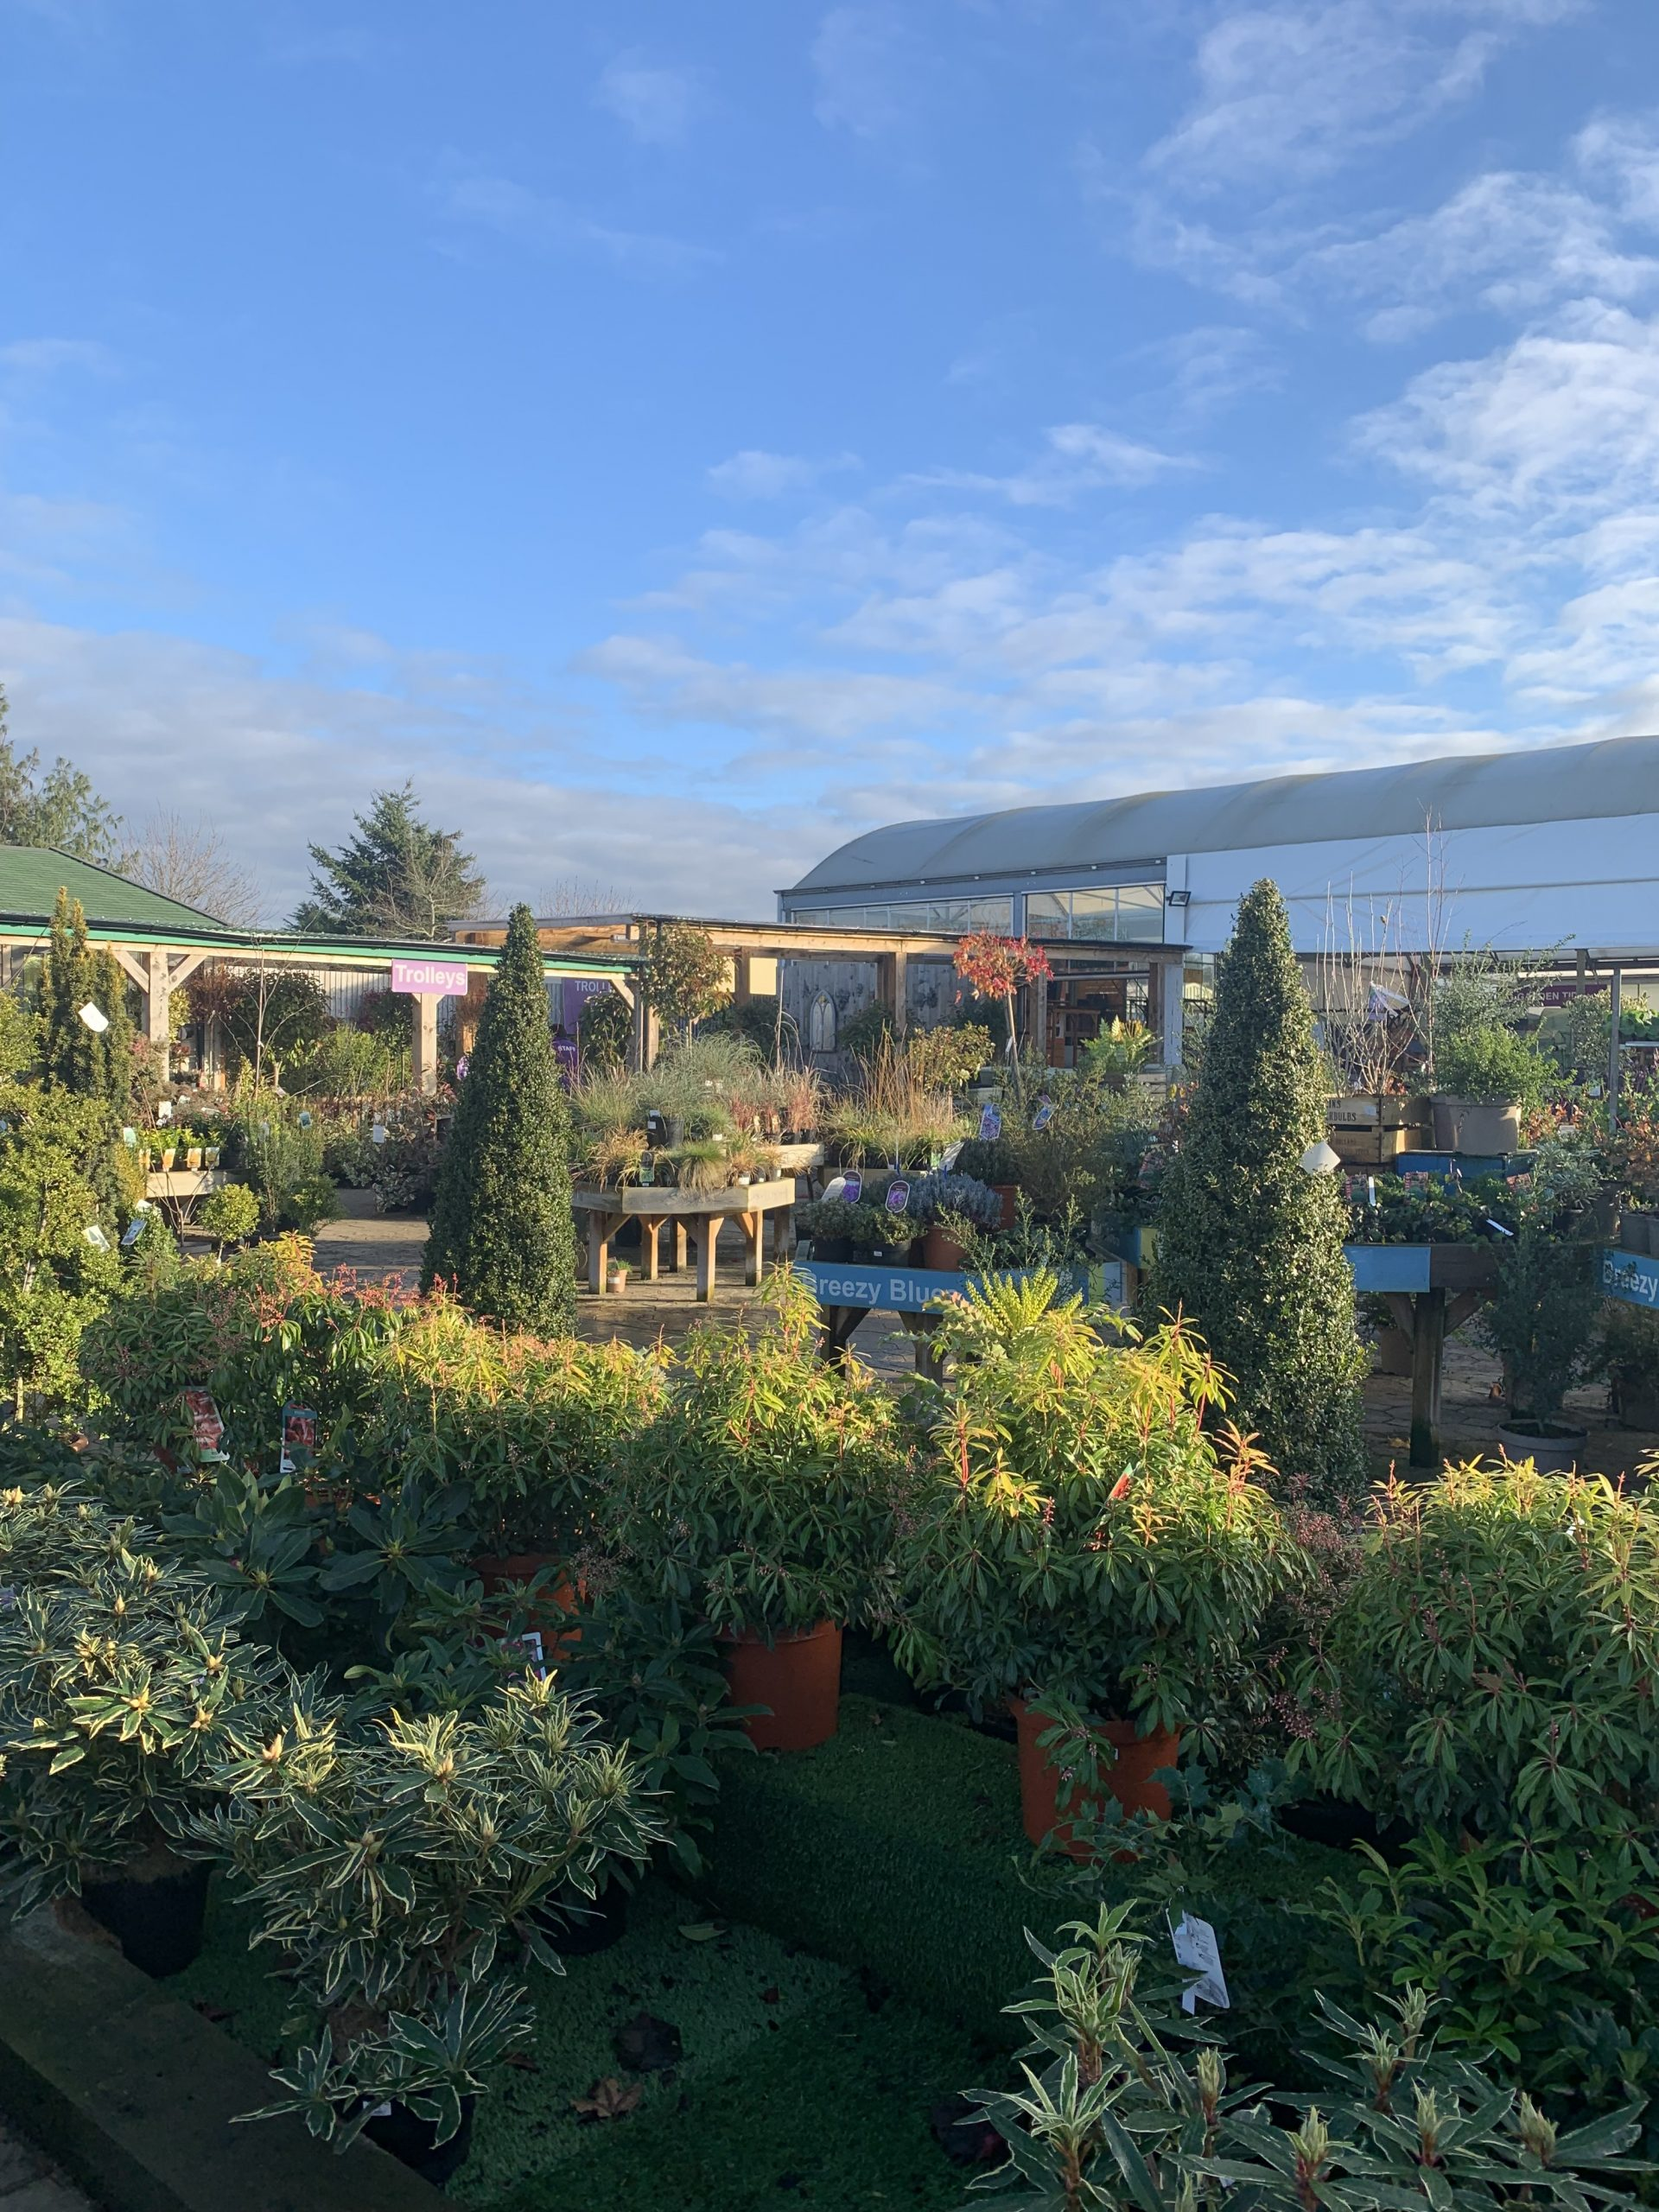 The outside area of the Ullesthorpe Palmers Garden Centre